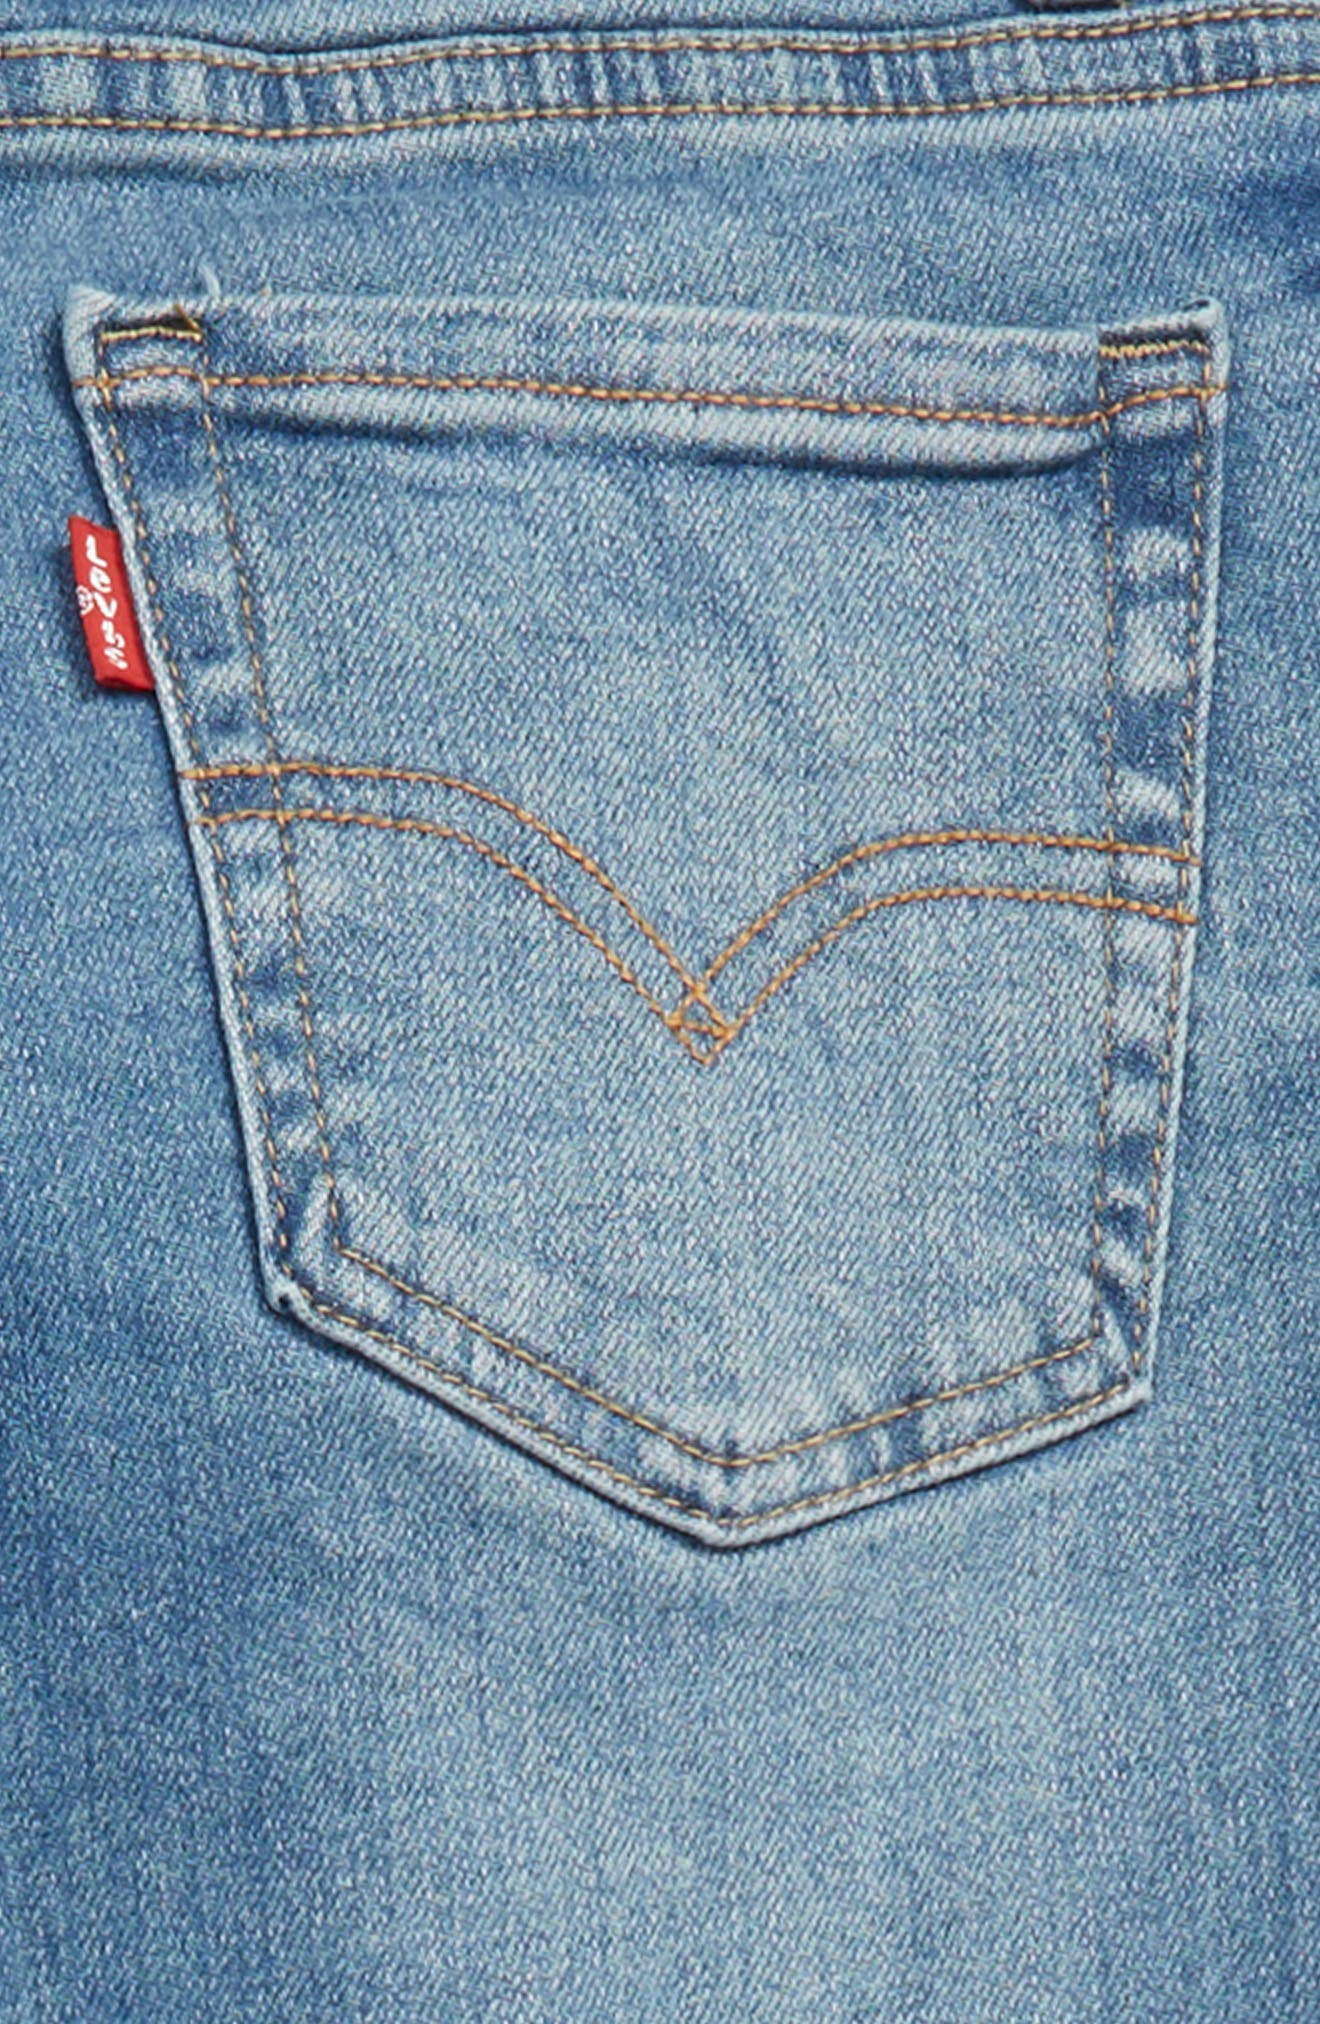 519<sup>™</sup> Extreme Skinny Fit Jeans,                             Alternate thumbnail 3, color,                             PALISADES